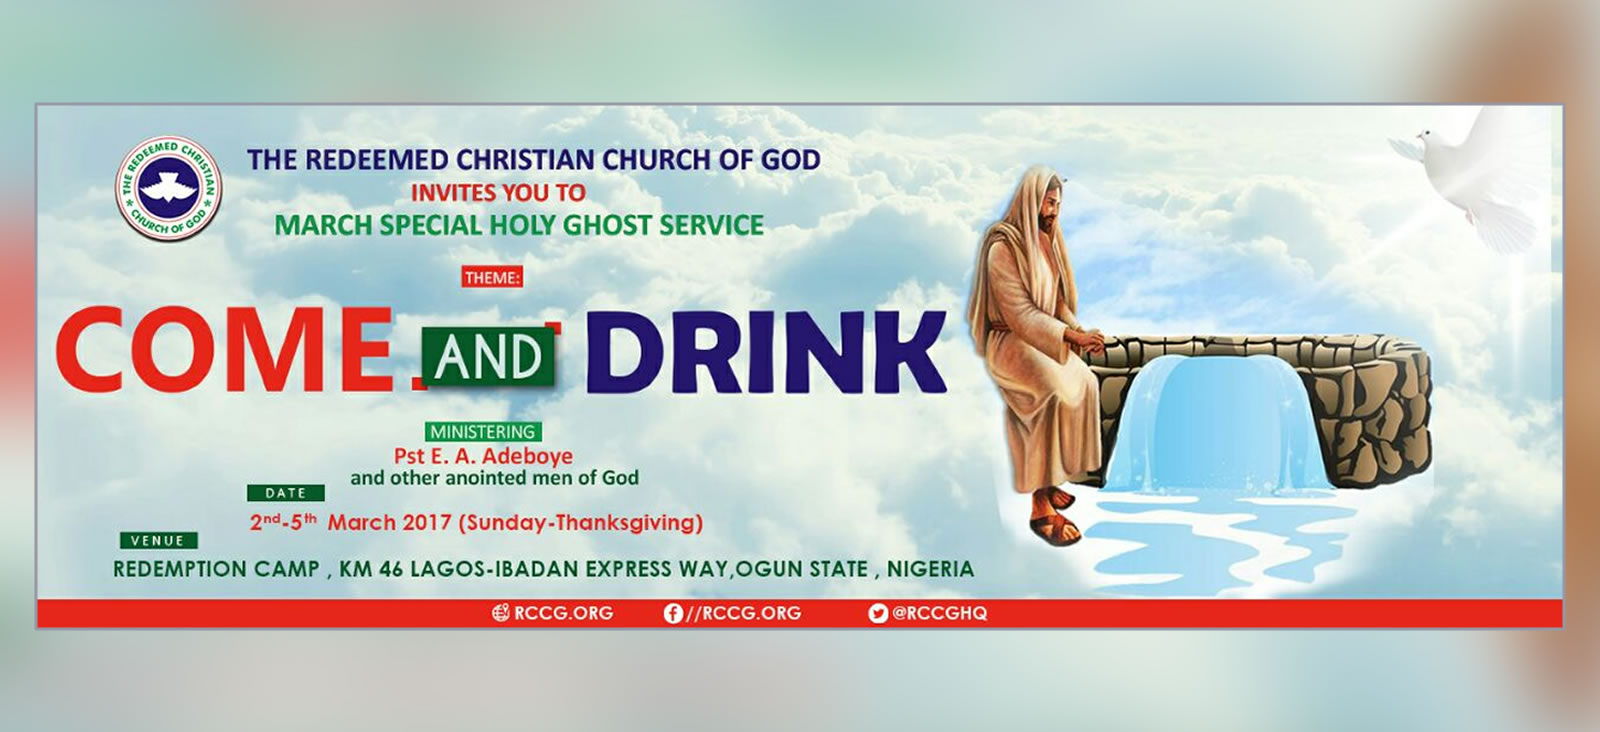 Day 1 - March 2017 Special Holy Ghost Service >> Come and Drink